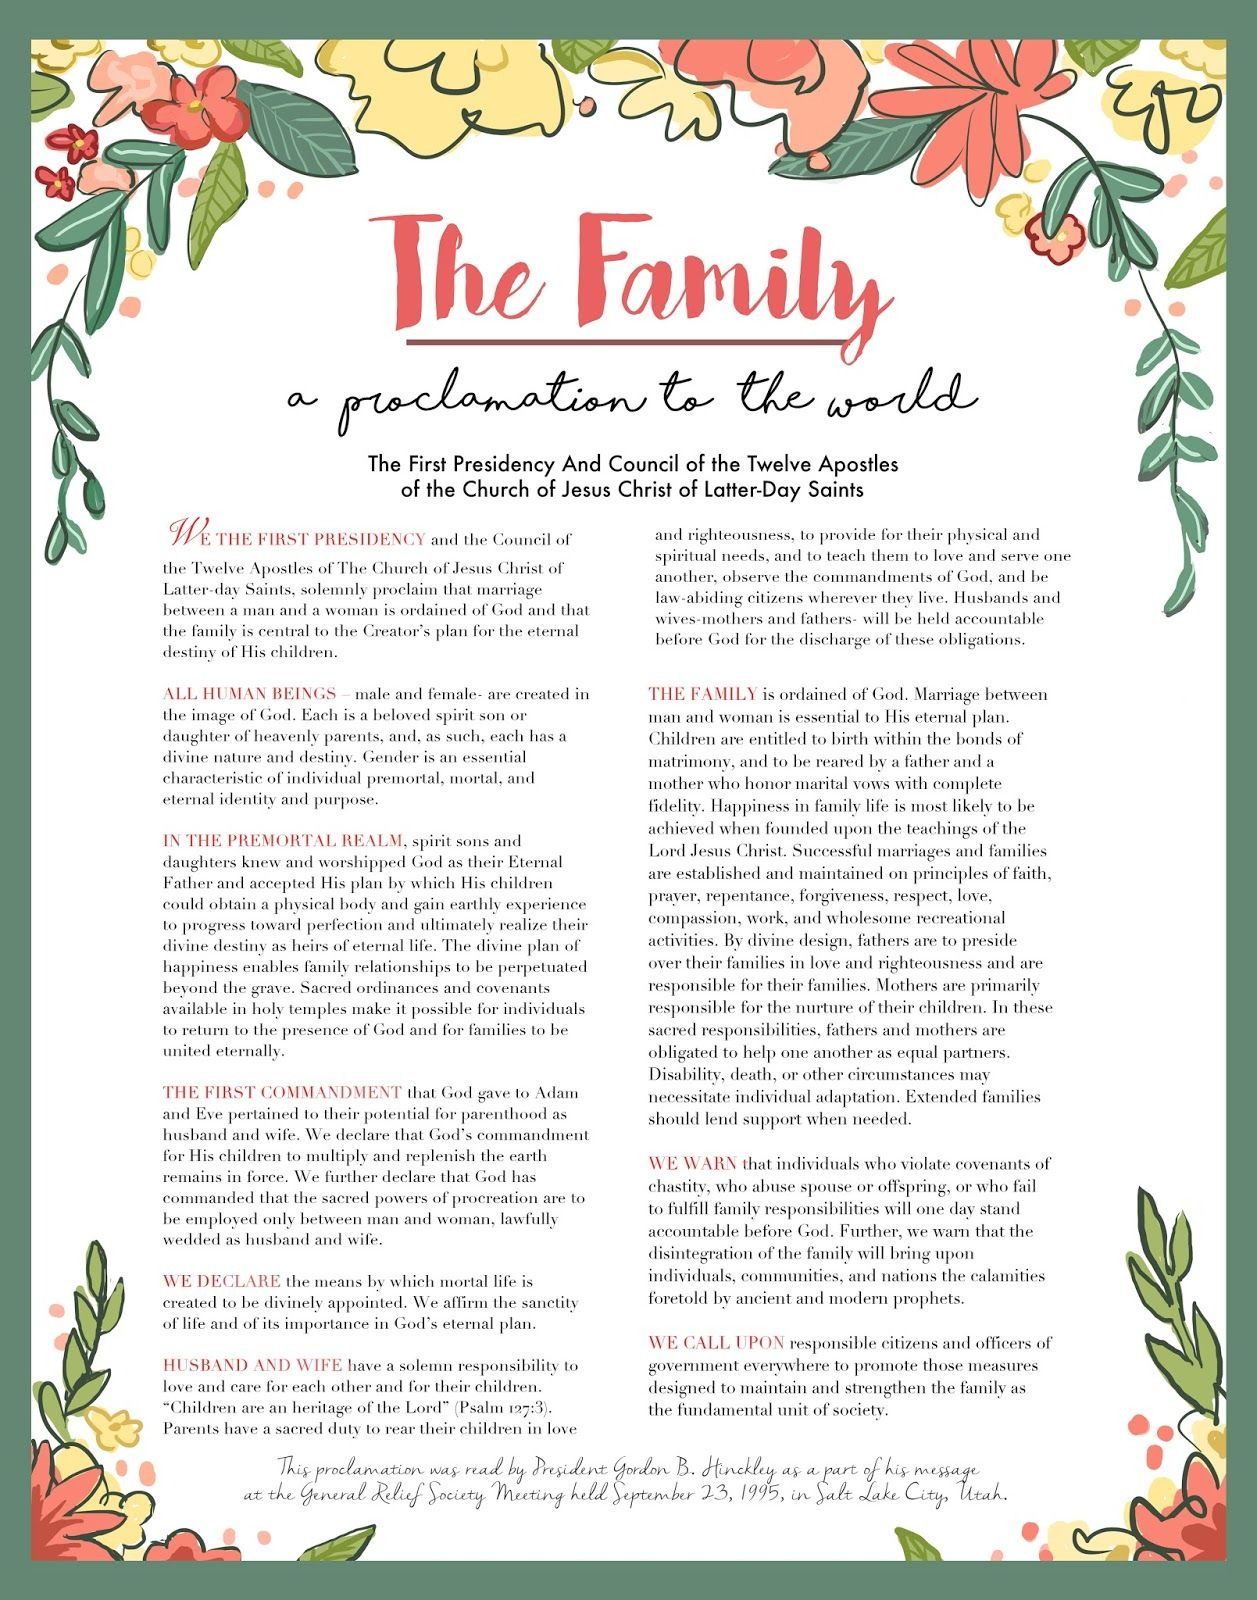 photograph regarding Family Proclamation Printable called Pinterest